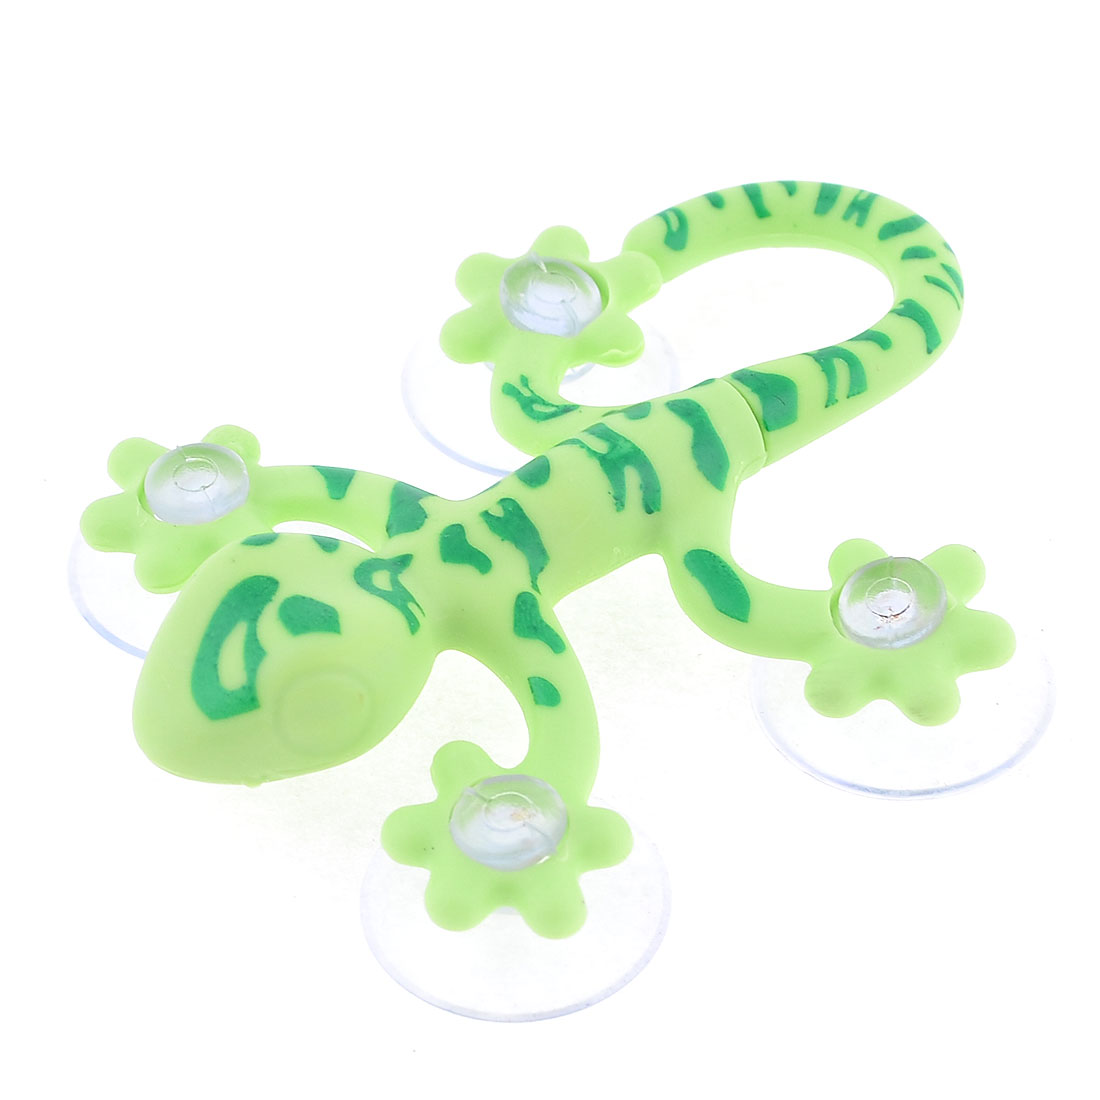 Green Plastic Gecko Design Towel Hanging Suction Cup Wall Hook